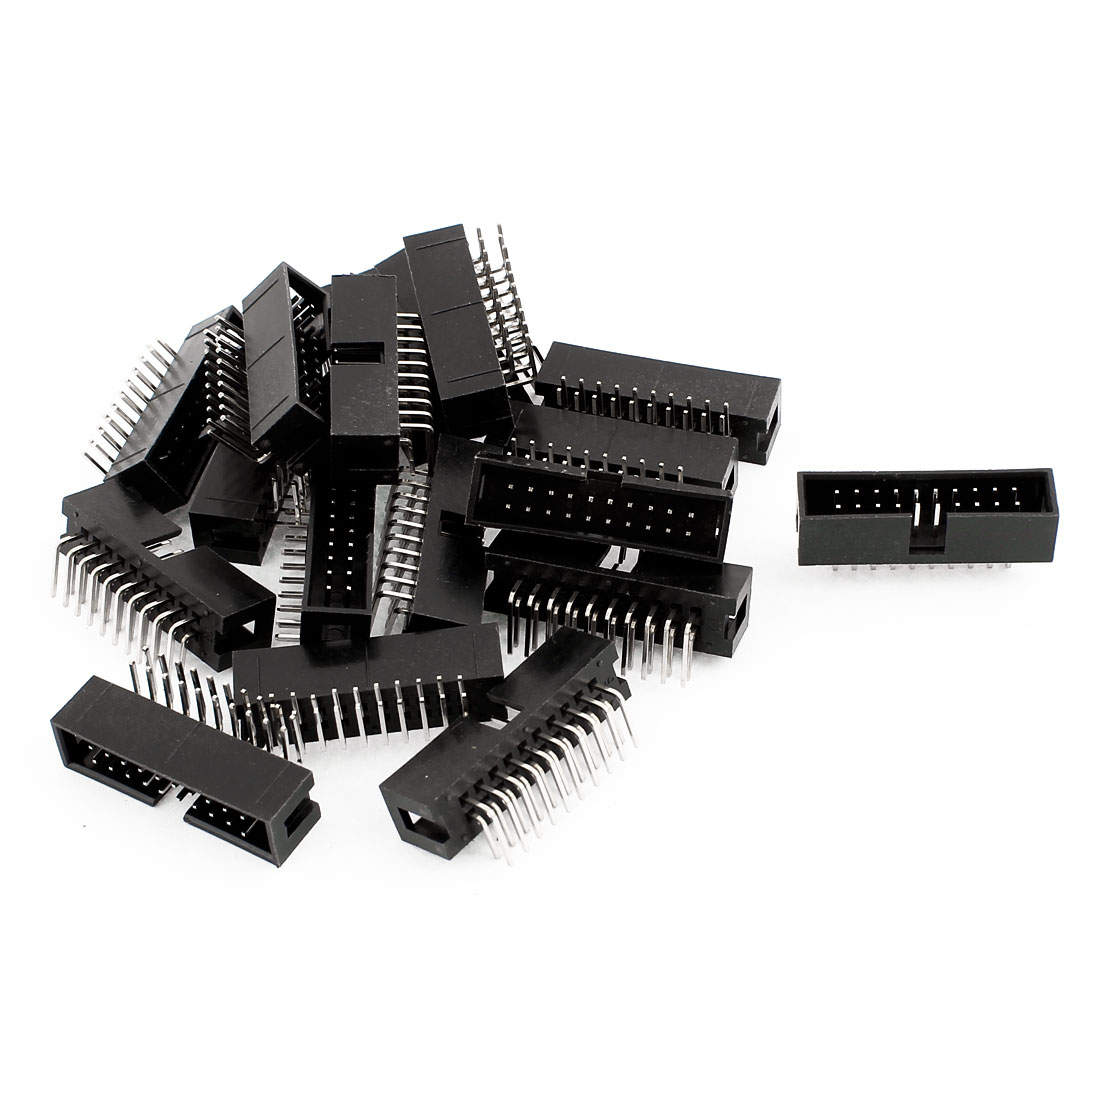 IDC Right Angled Box Header Connector 20 Way Pitch 2.54mm 18 Pcs